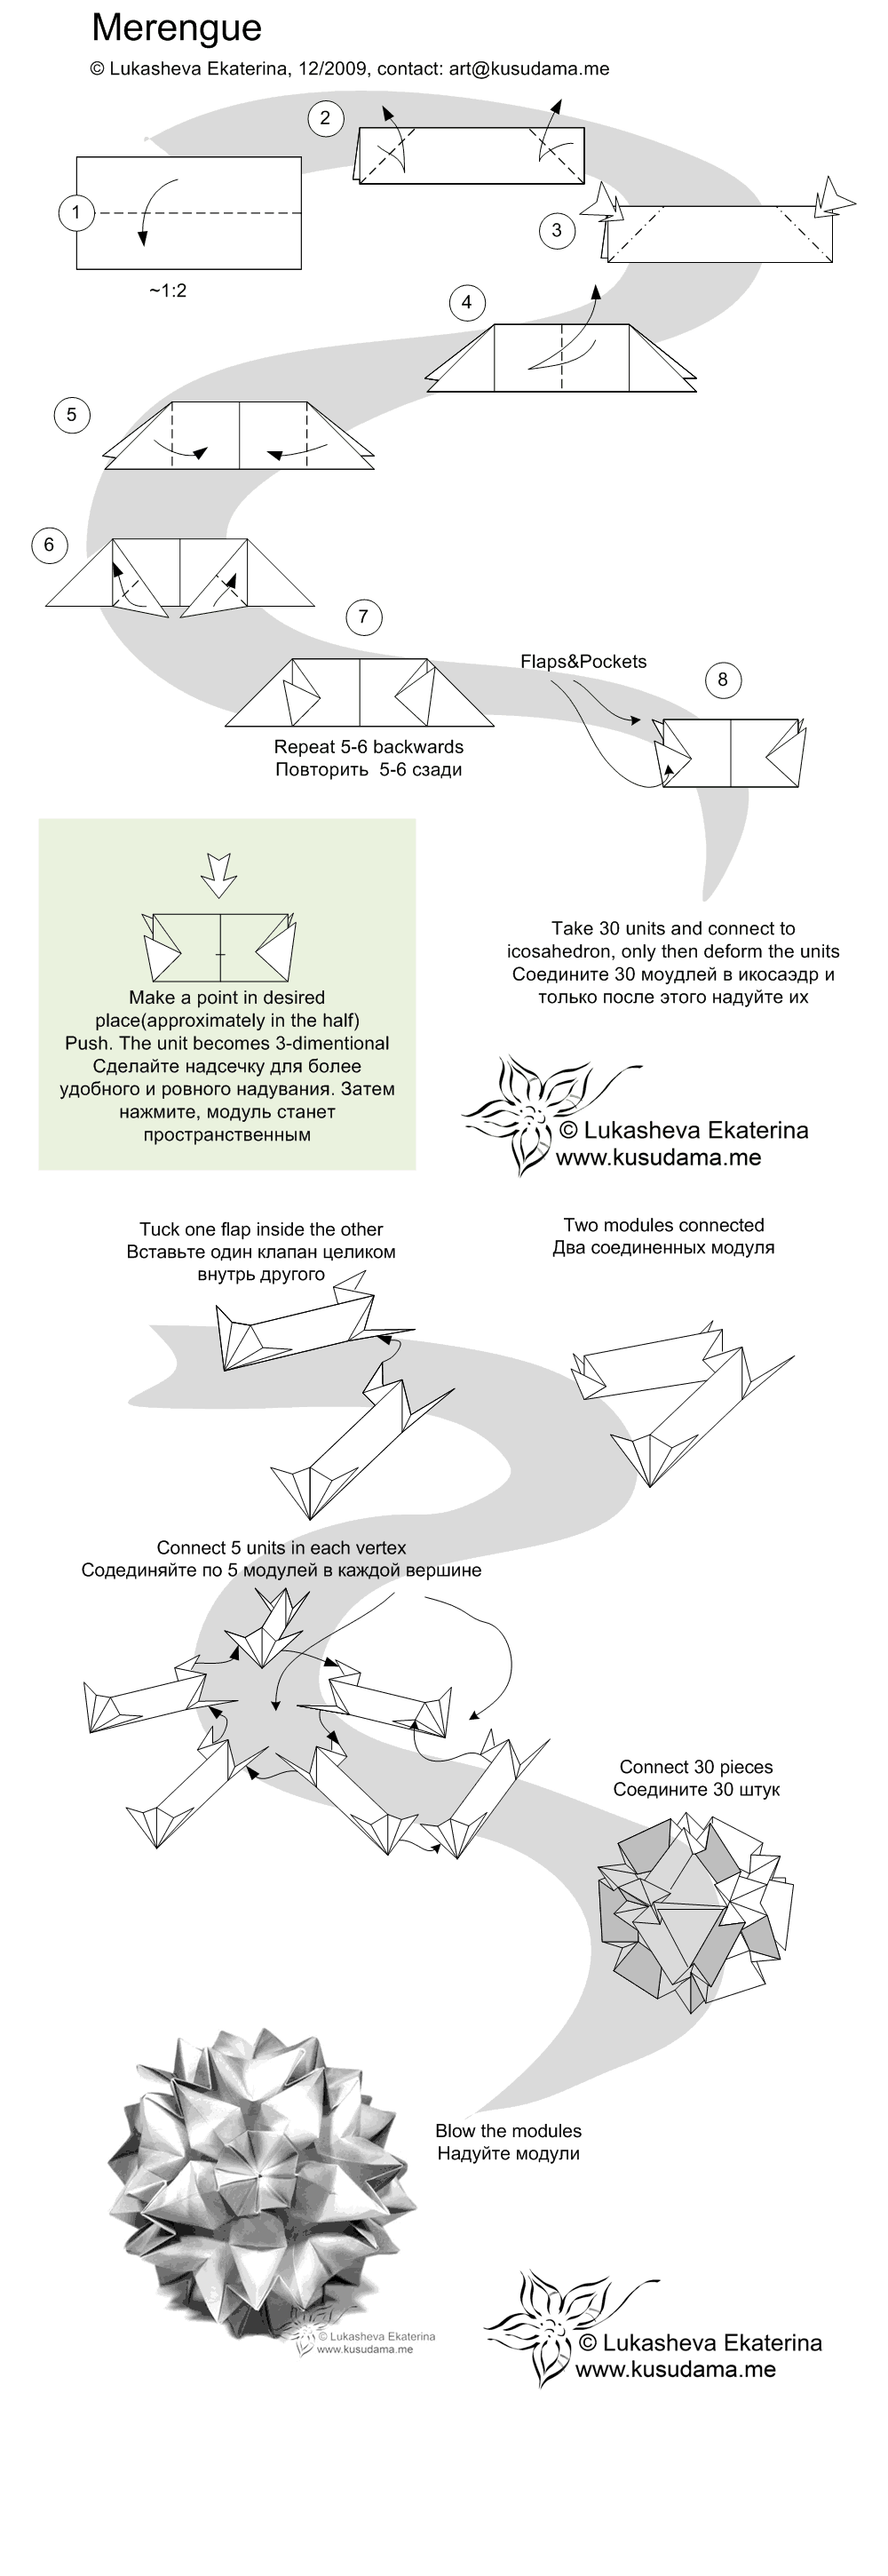 Diagram for Merengue kusudama